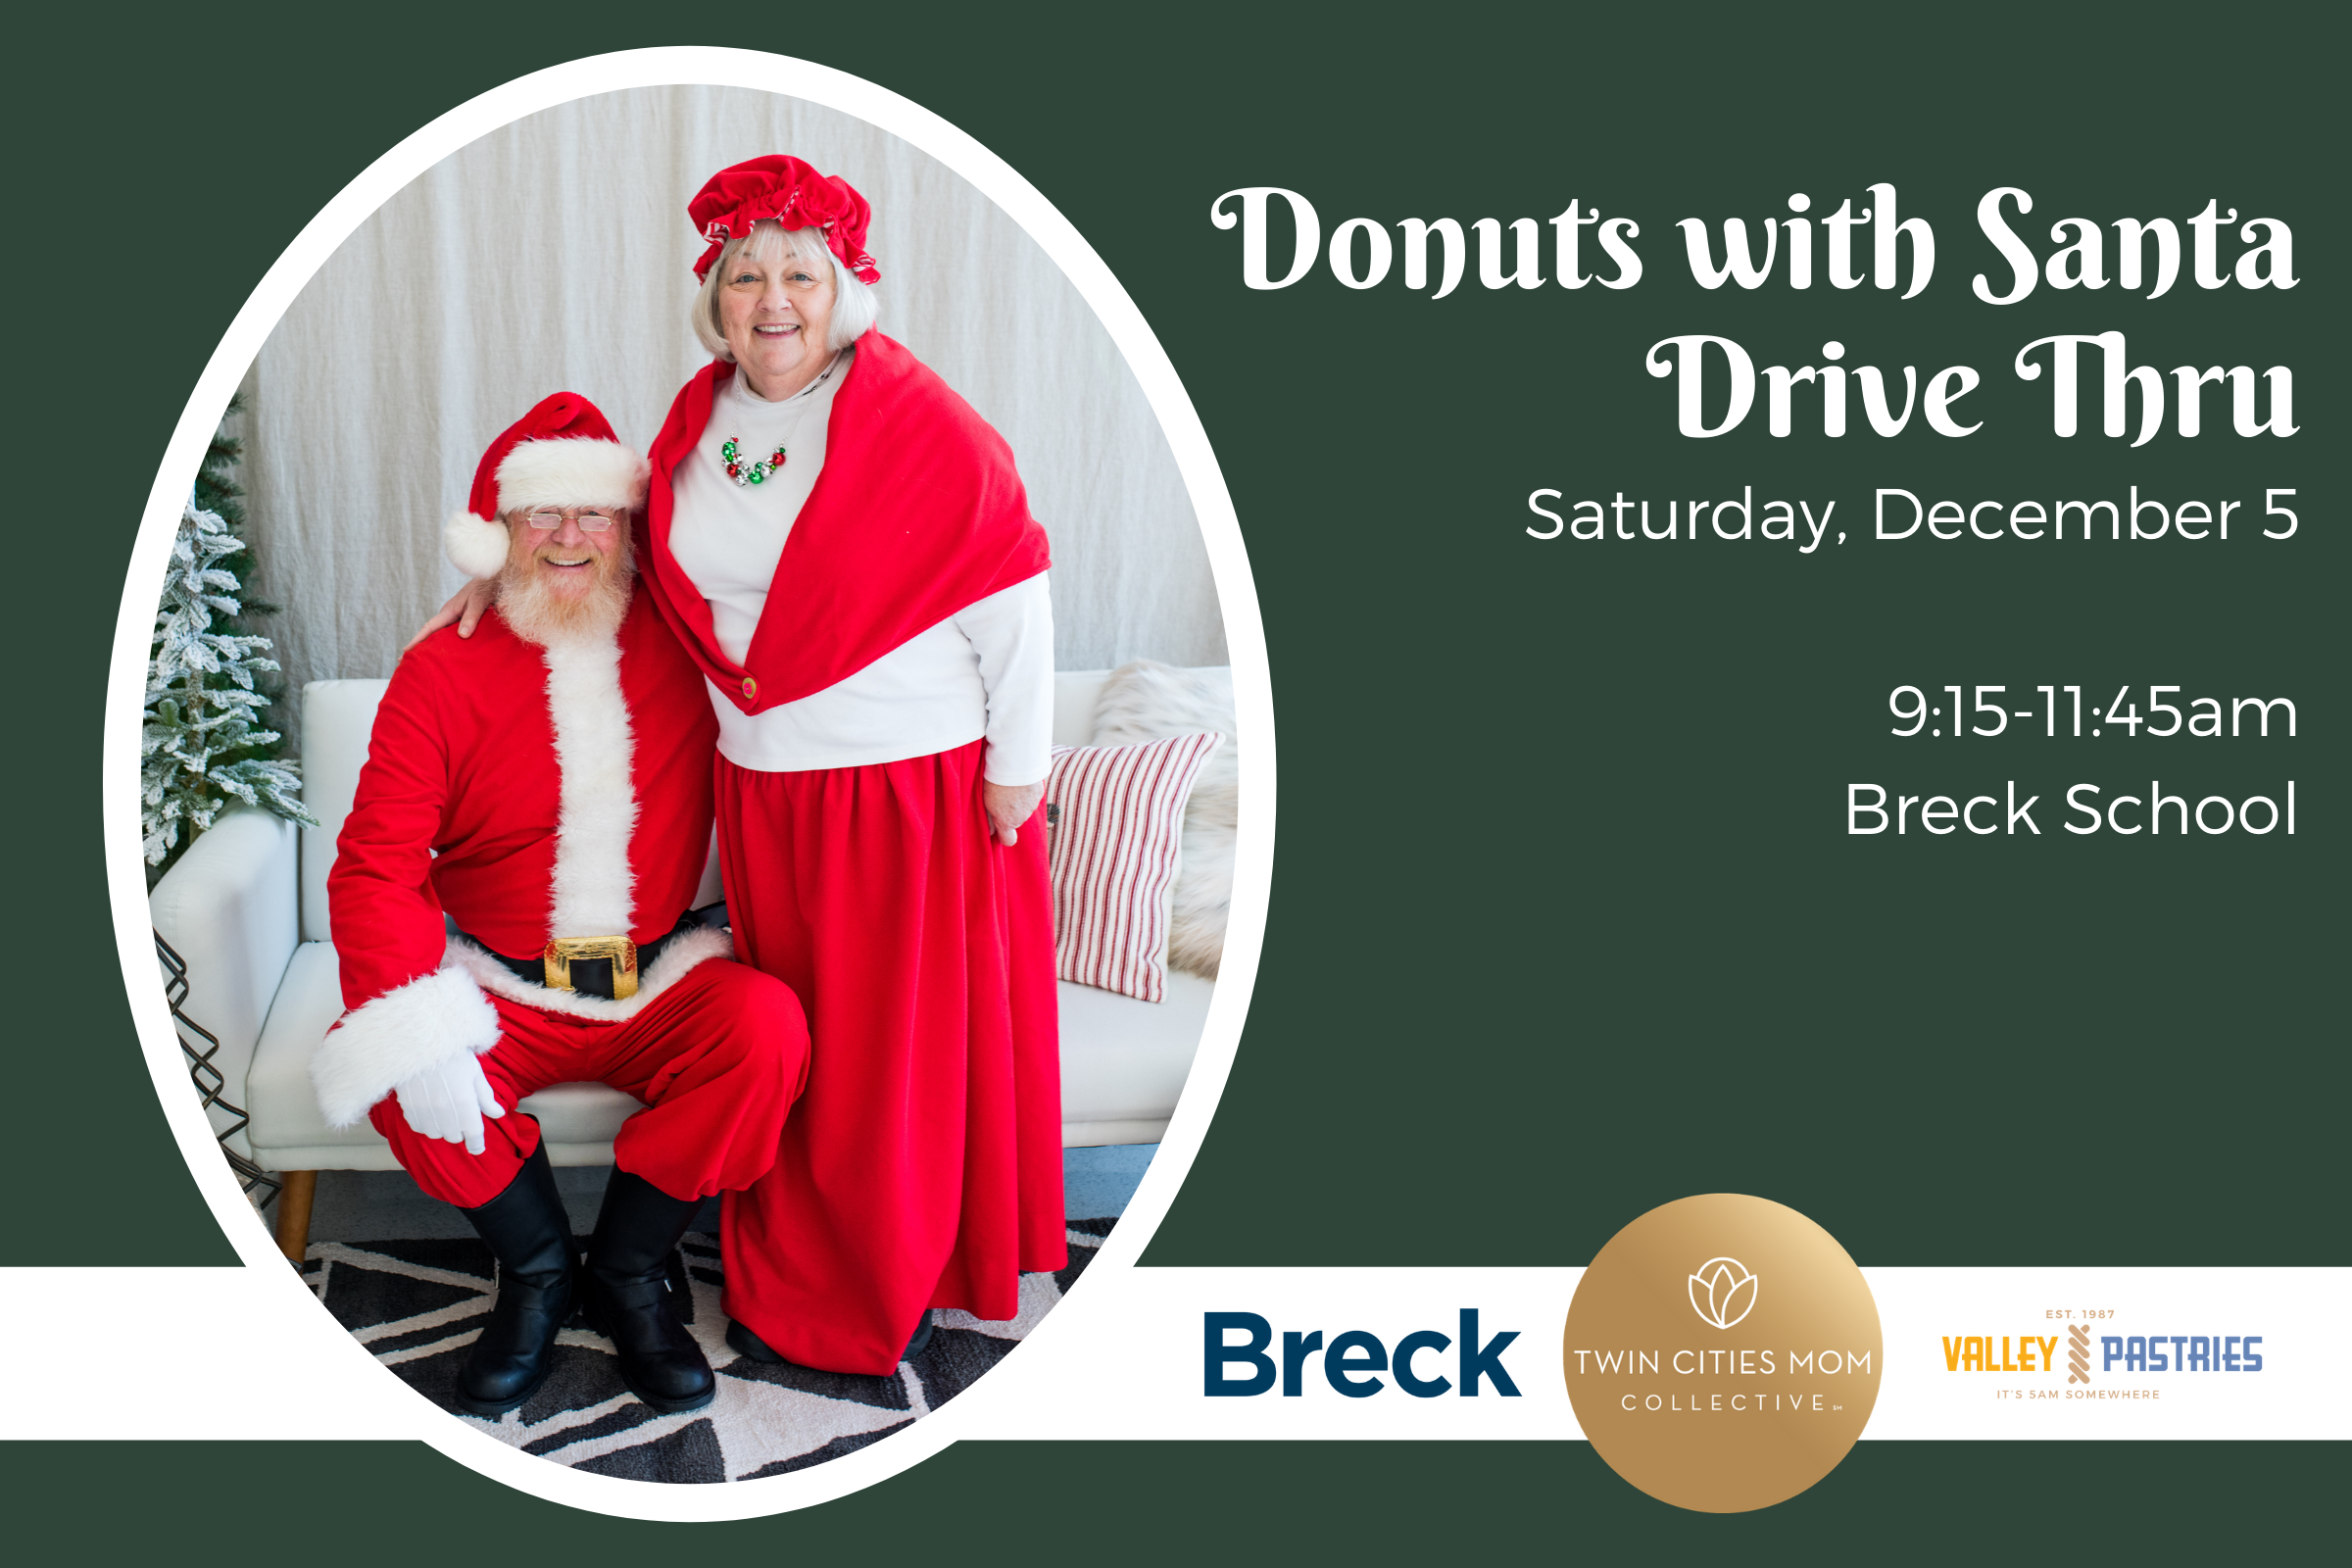 Christmas Events 2020 Twin Cities 2020 Donuts with Santa Drive Thru Event